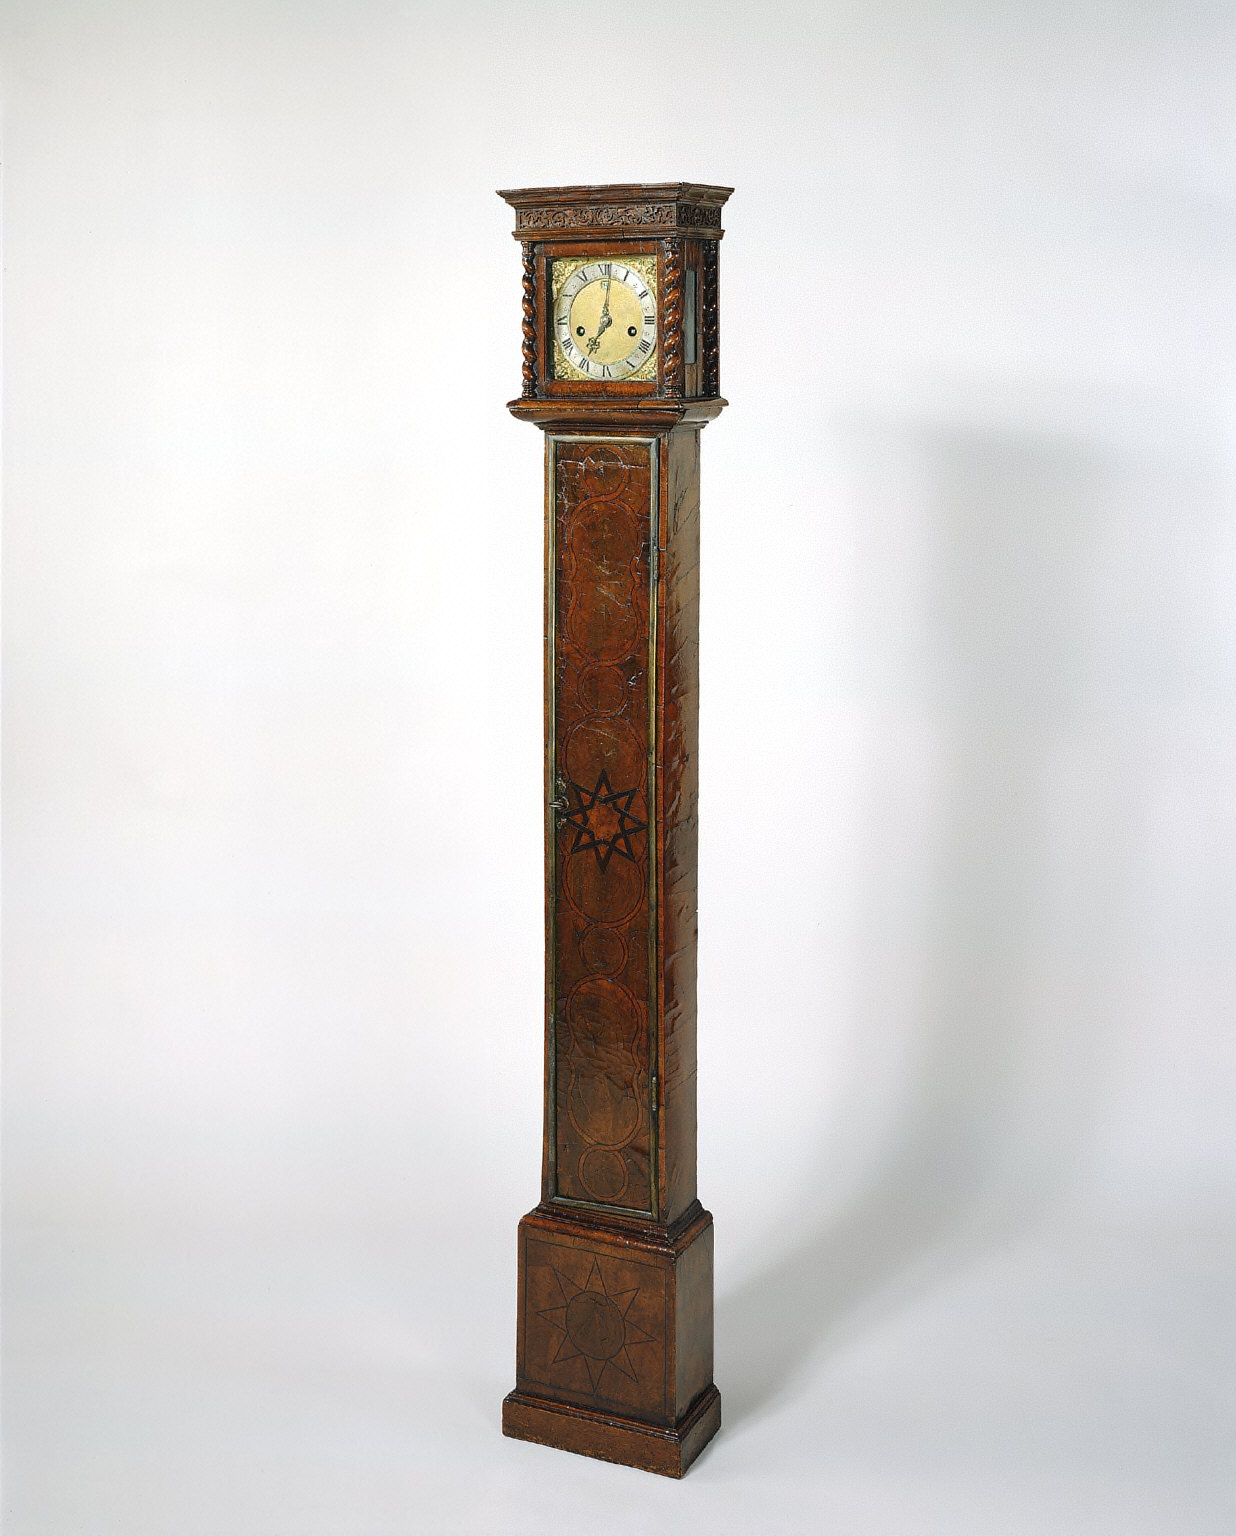 Miniature Olivewood Longcase Clock with Hour Striking and Dial